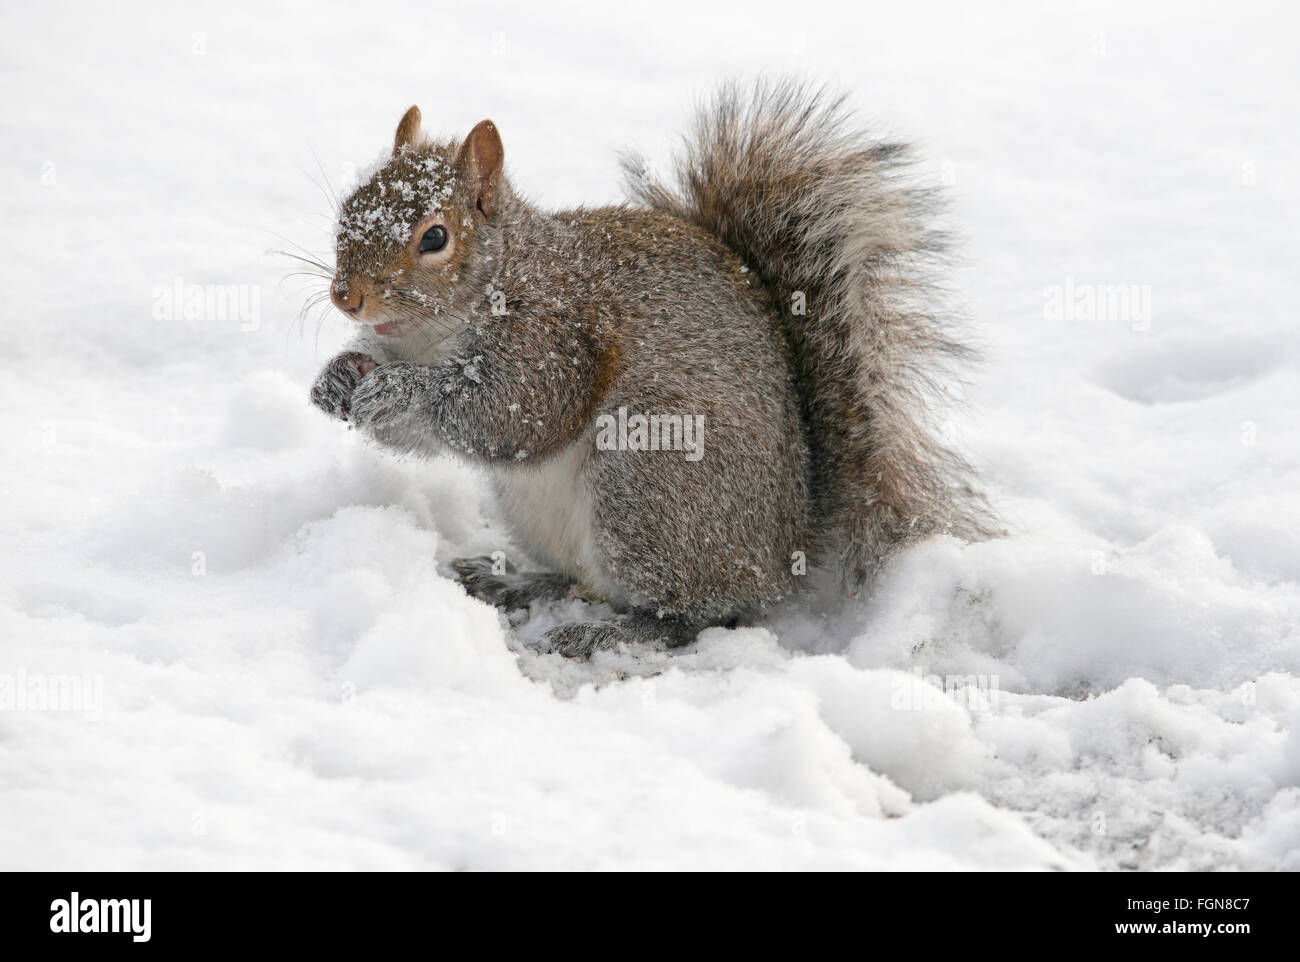 Eastern Gray Squirrel (Sciurus carolinensis) eating stored acorns after snow storm, Michigan USA - Stock Image